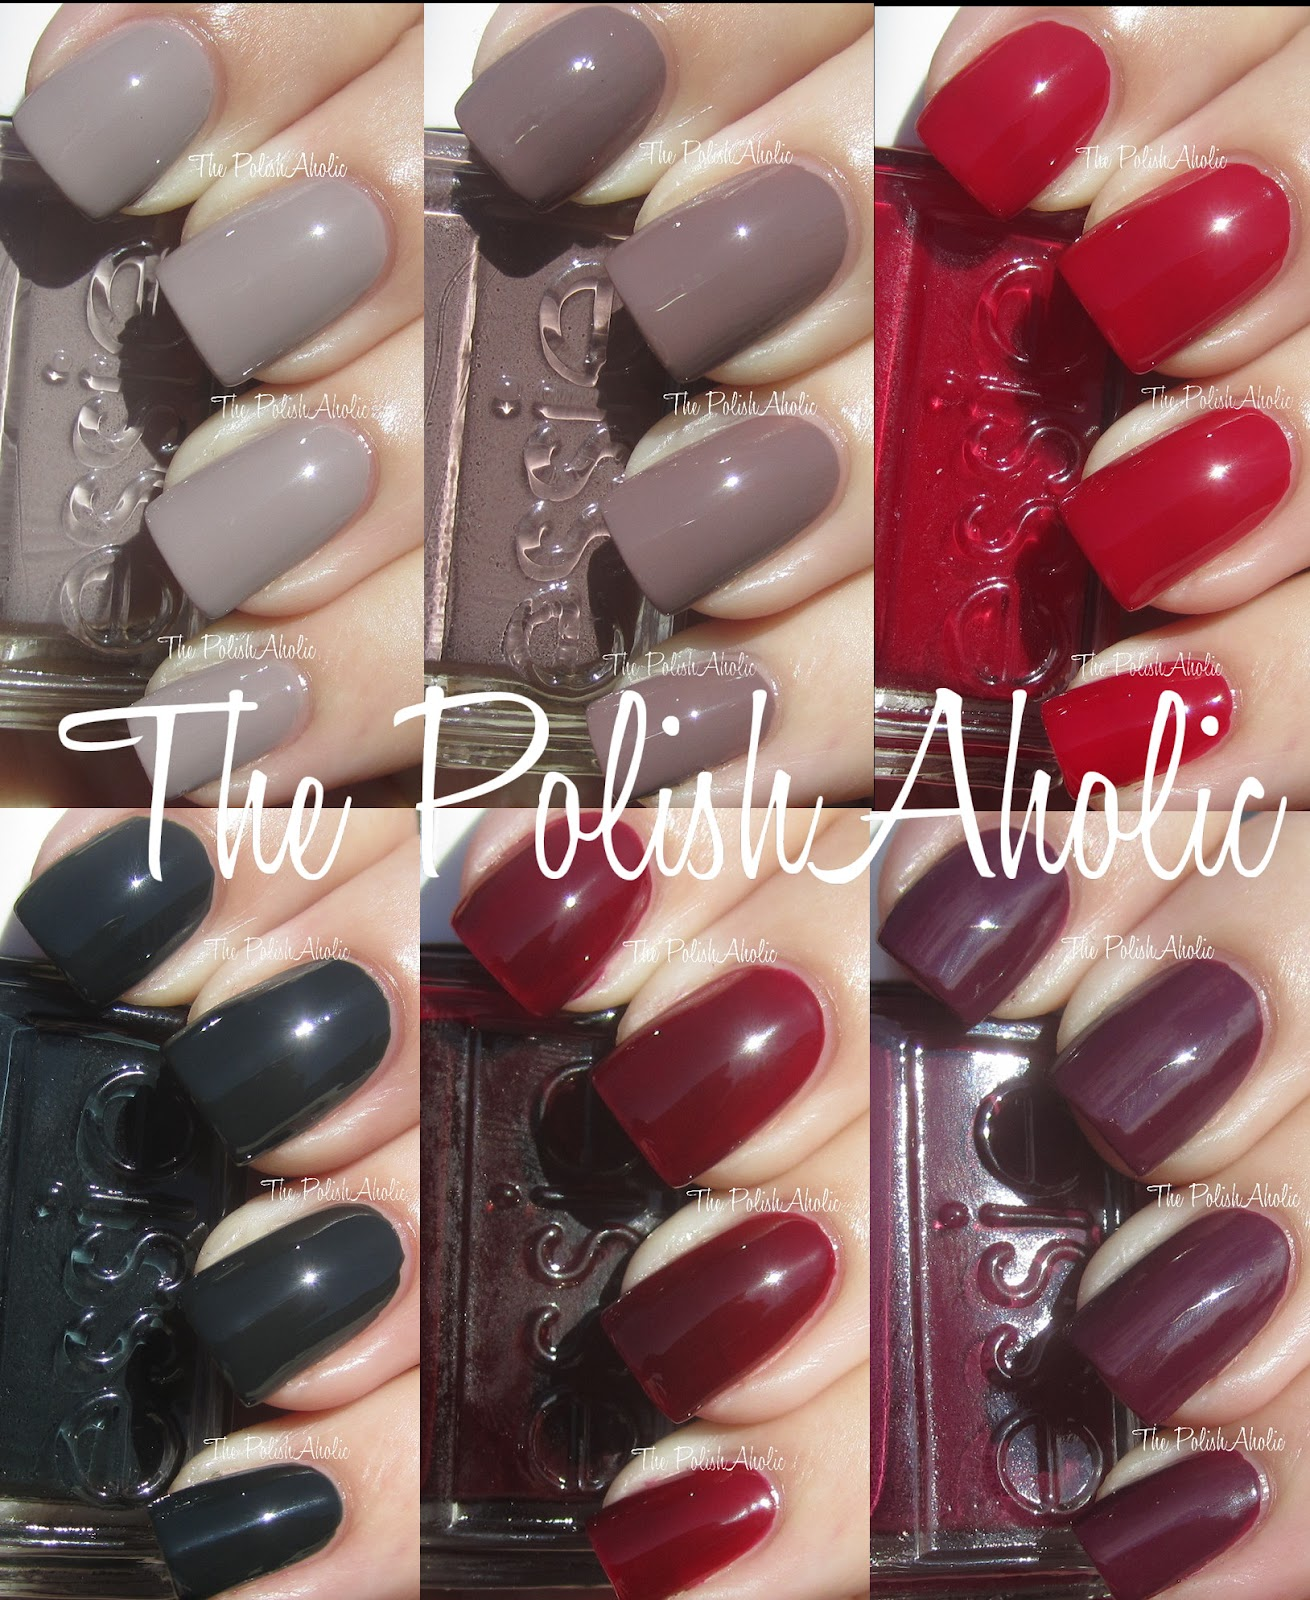 The PolishAholic: Essie Fall 2012 Stylenomics Collection Swatches